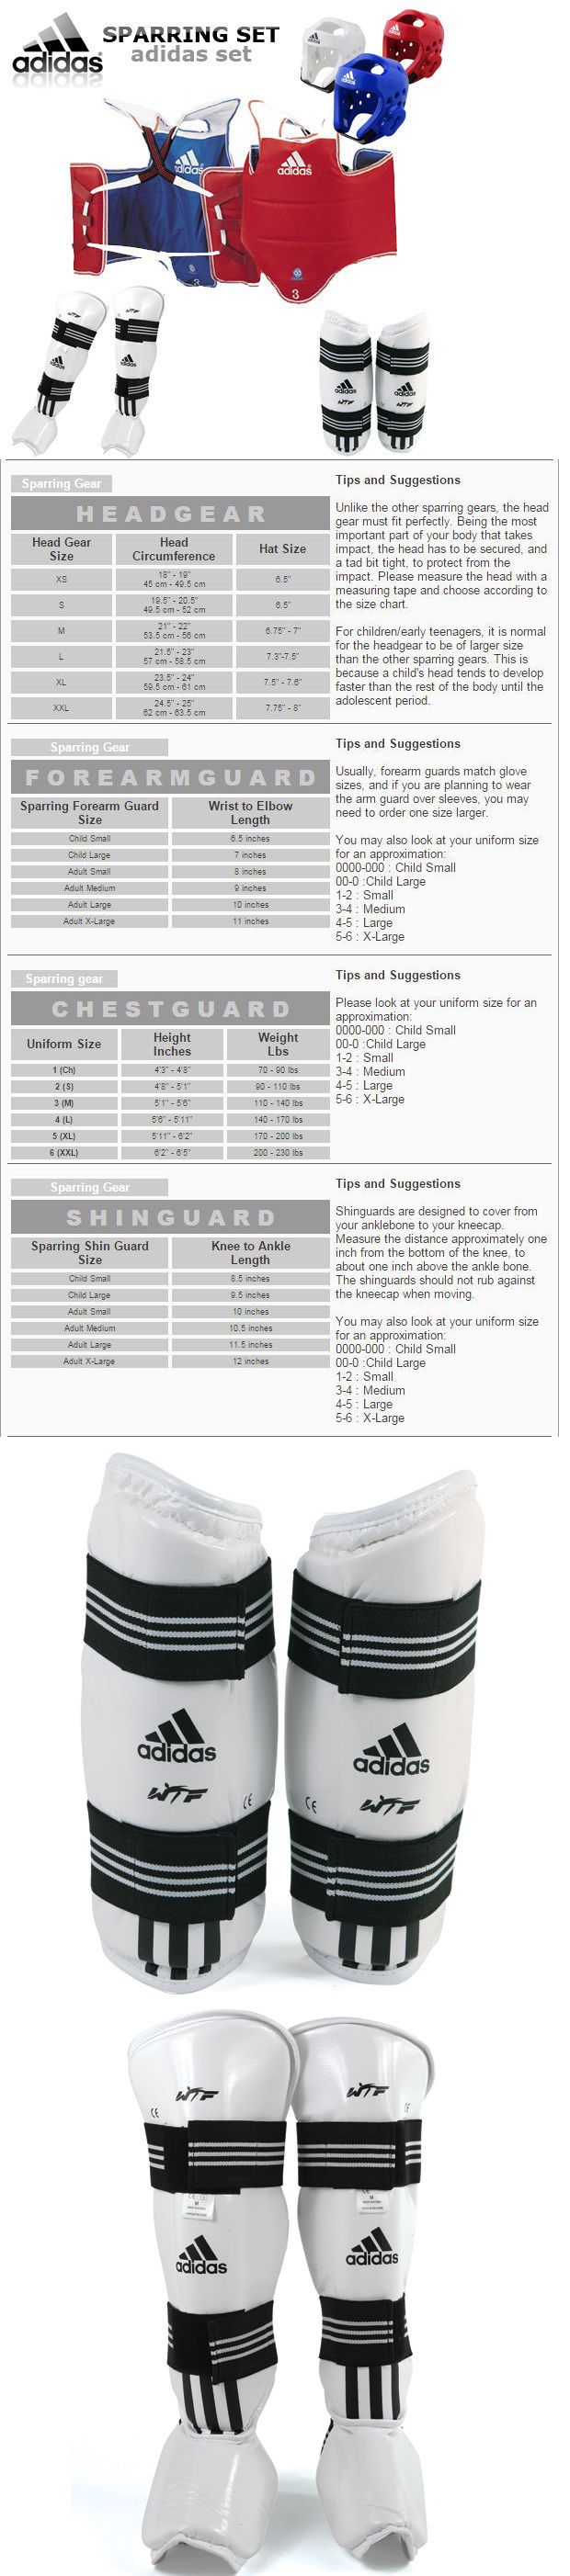 Other Combat Sport Protection 179783: Adidas Tkd Wtf Approved Taekwondo Sparring Gear Set And Free Double Mouth Guard BUY IT NOW ONLY: $184.99